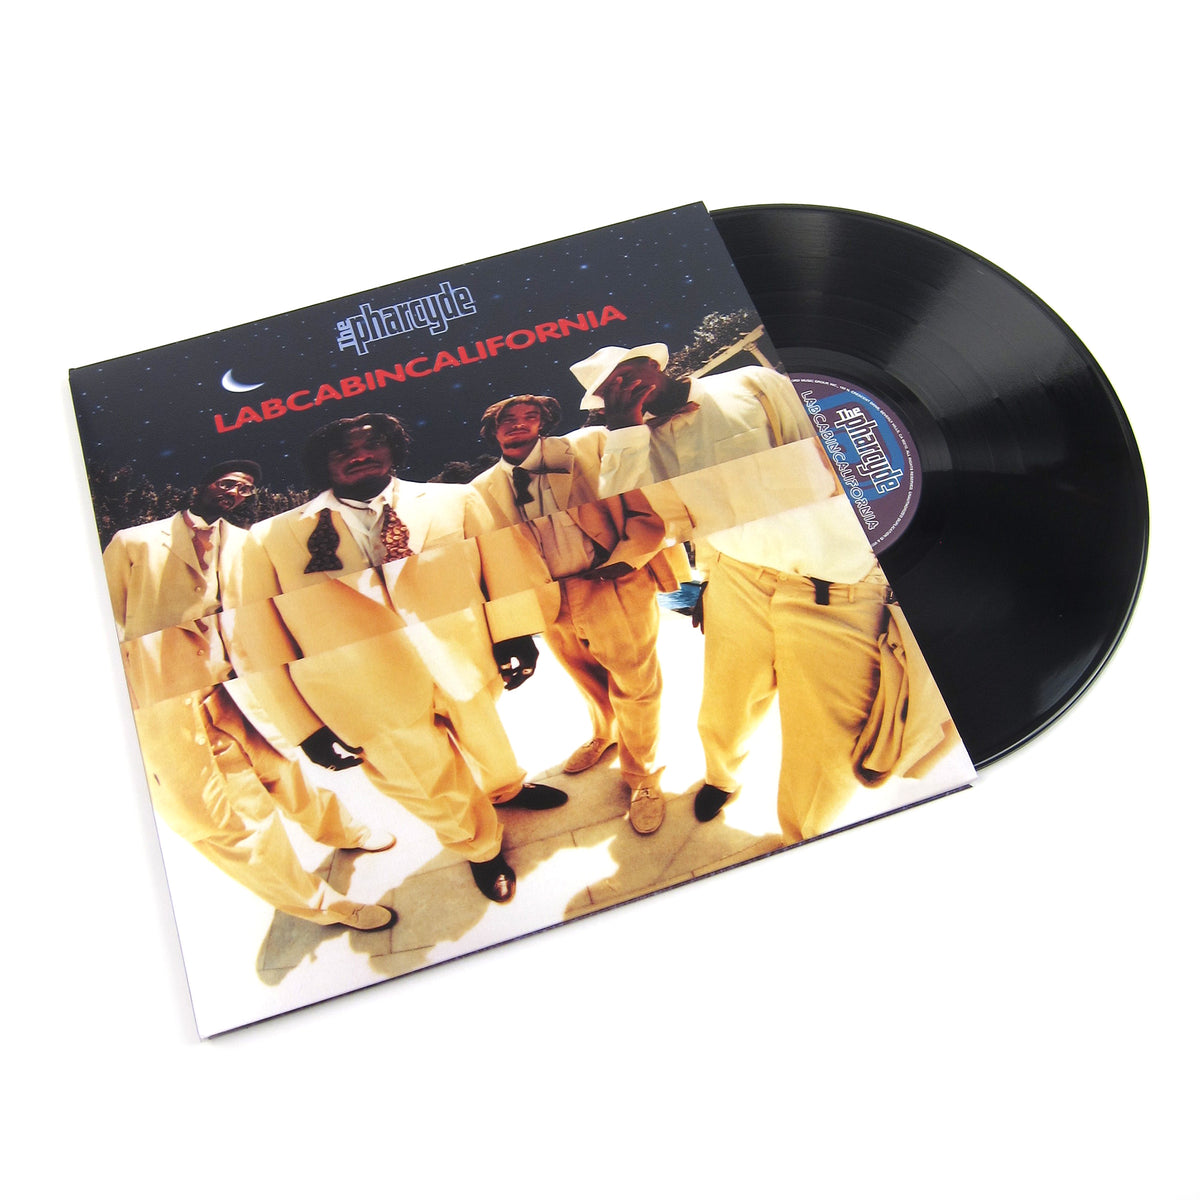 The Pharcyde: Labcabincalifornia Vinyl 2LP